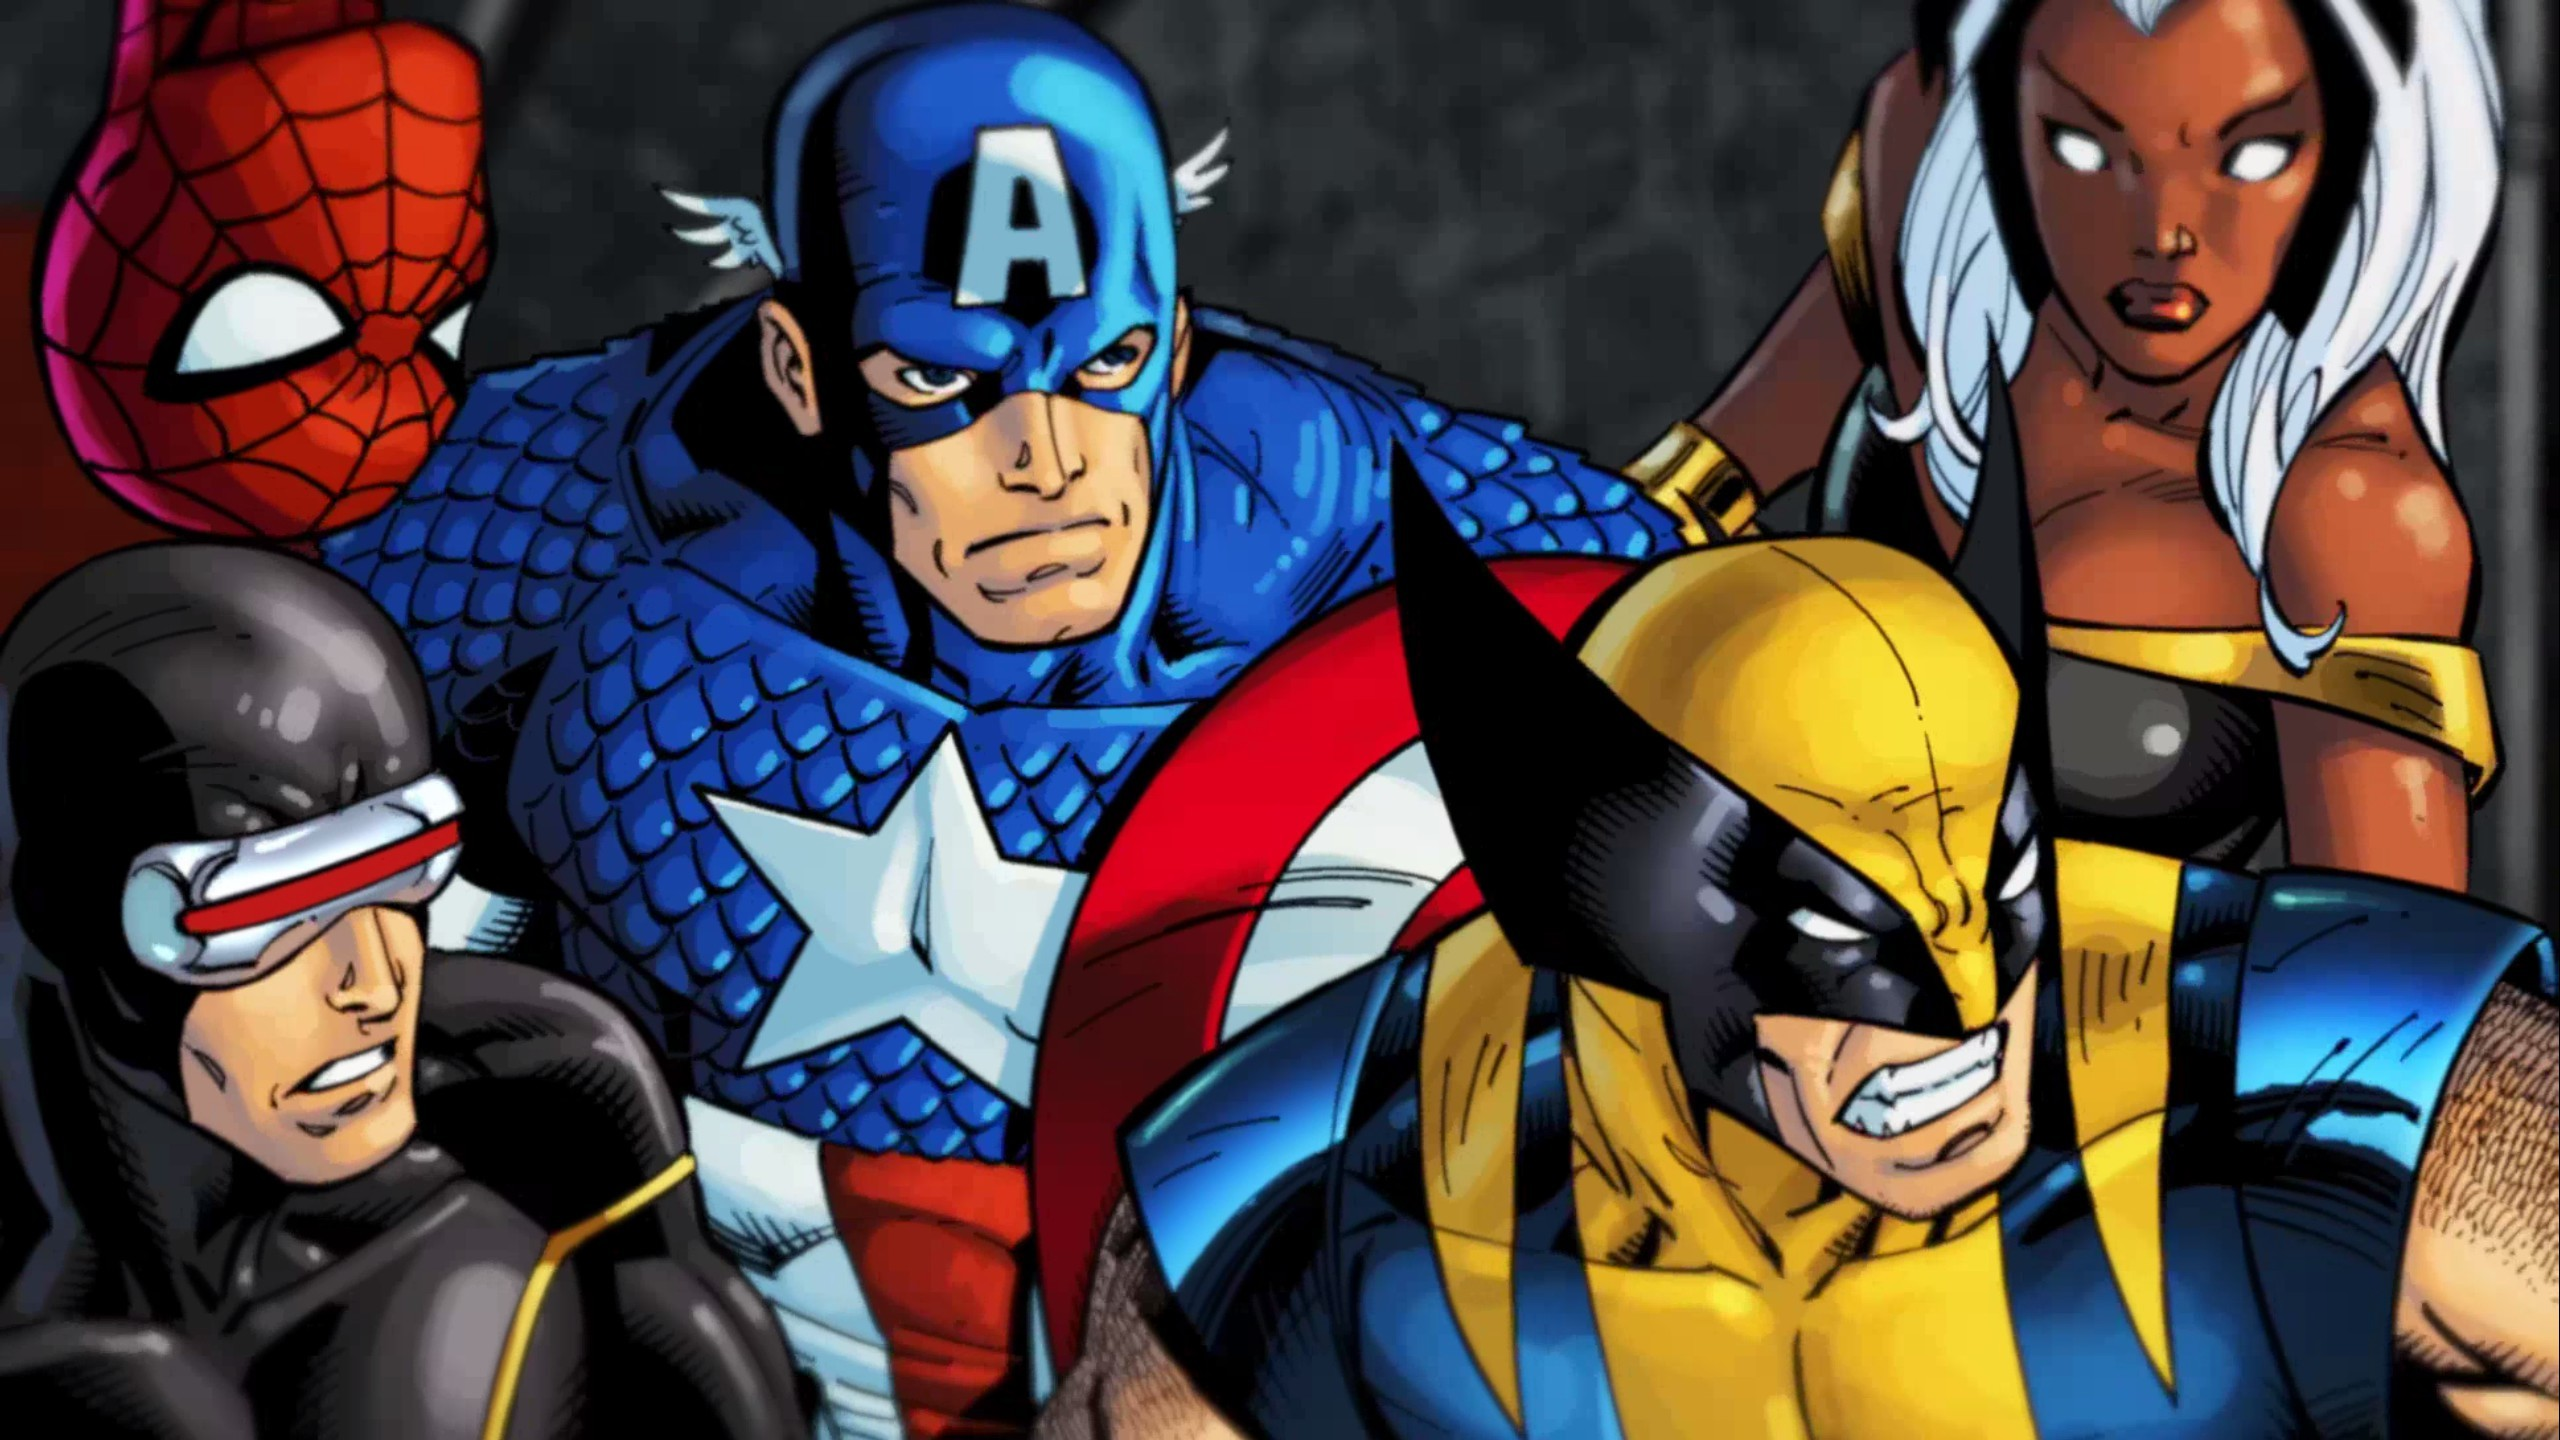 Marvel 3d wallpapers 60 images - All marvel heroes wallpaper ...